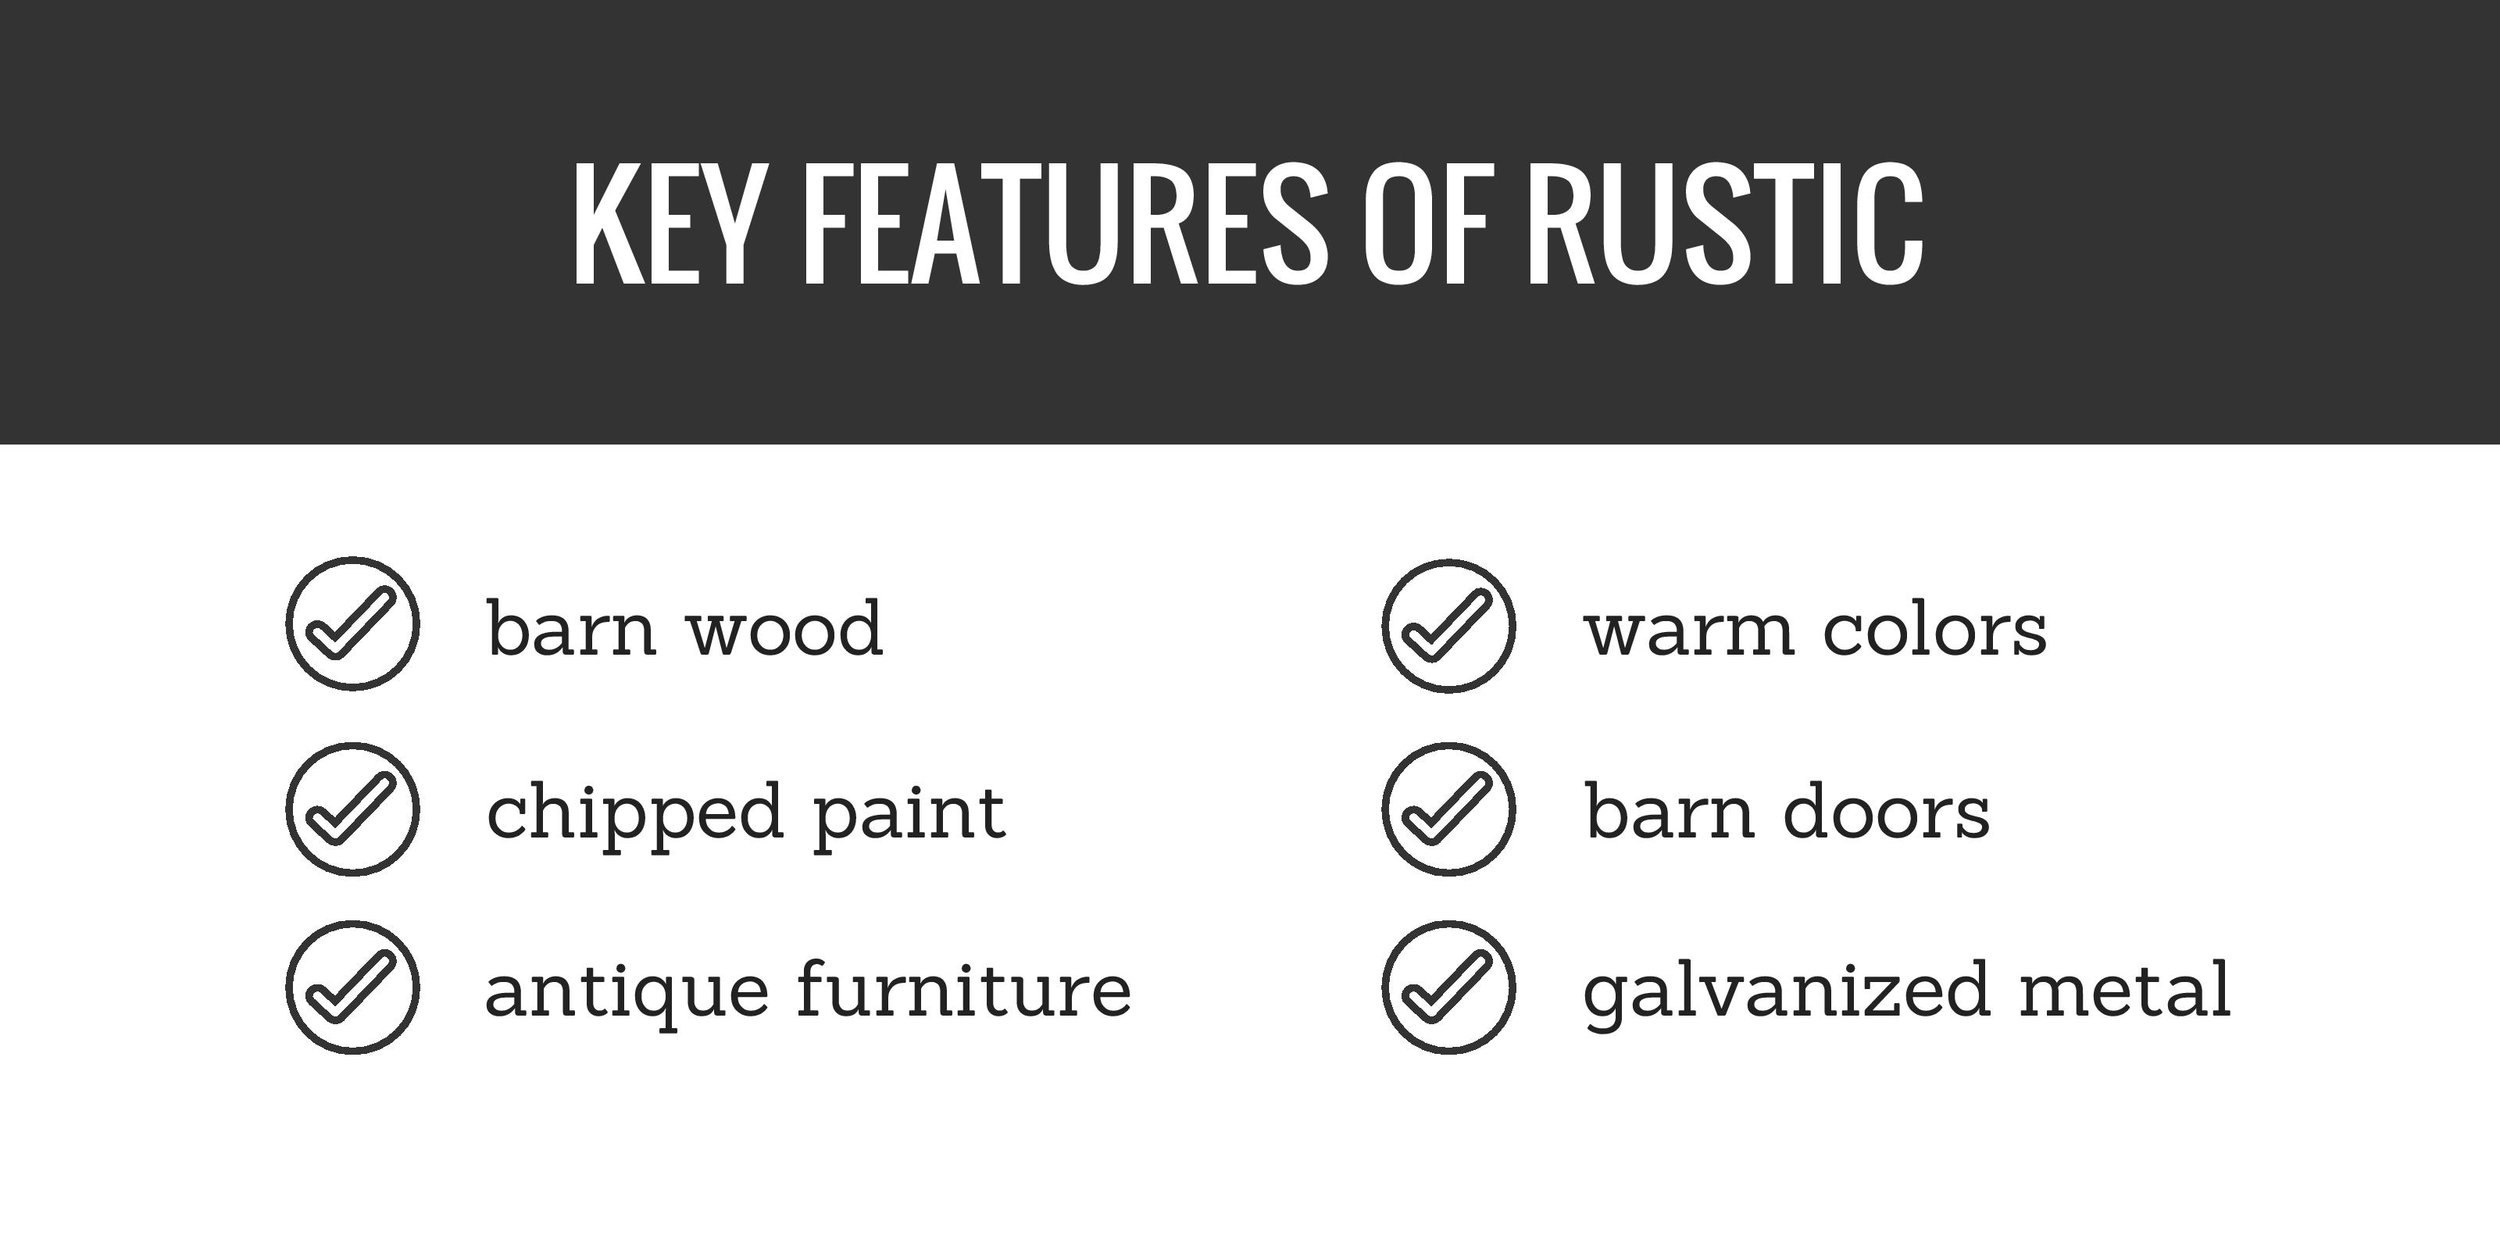 key features of rustic